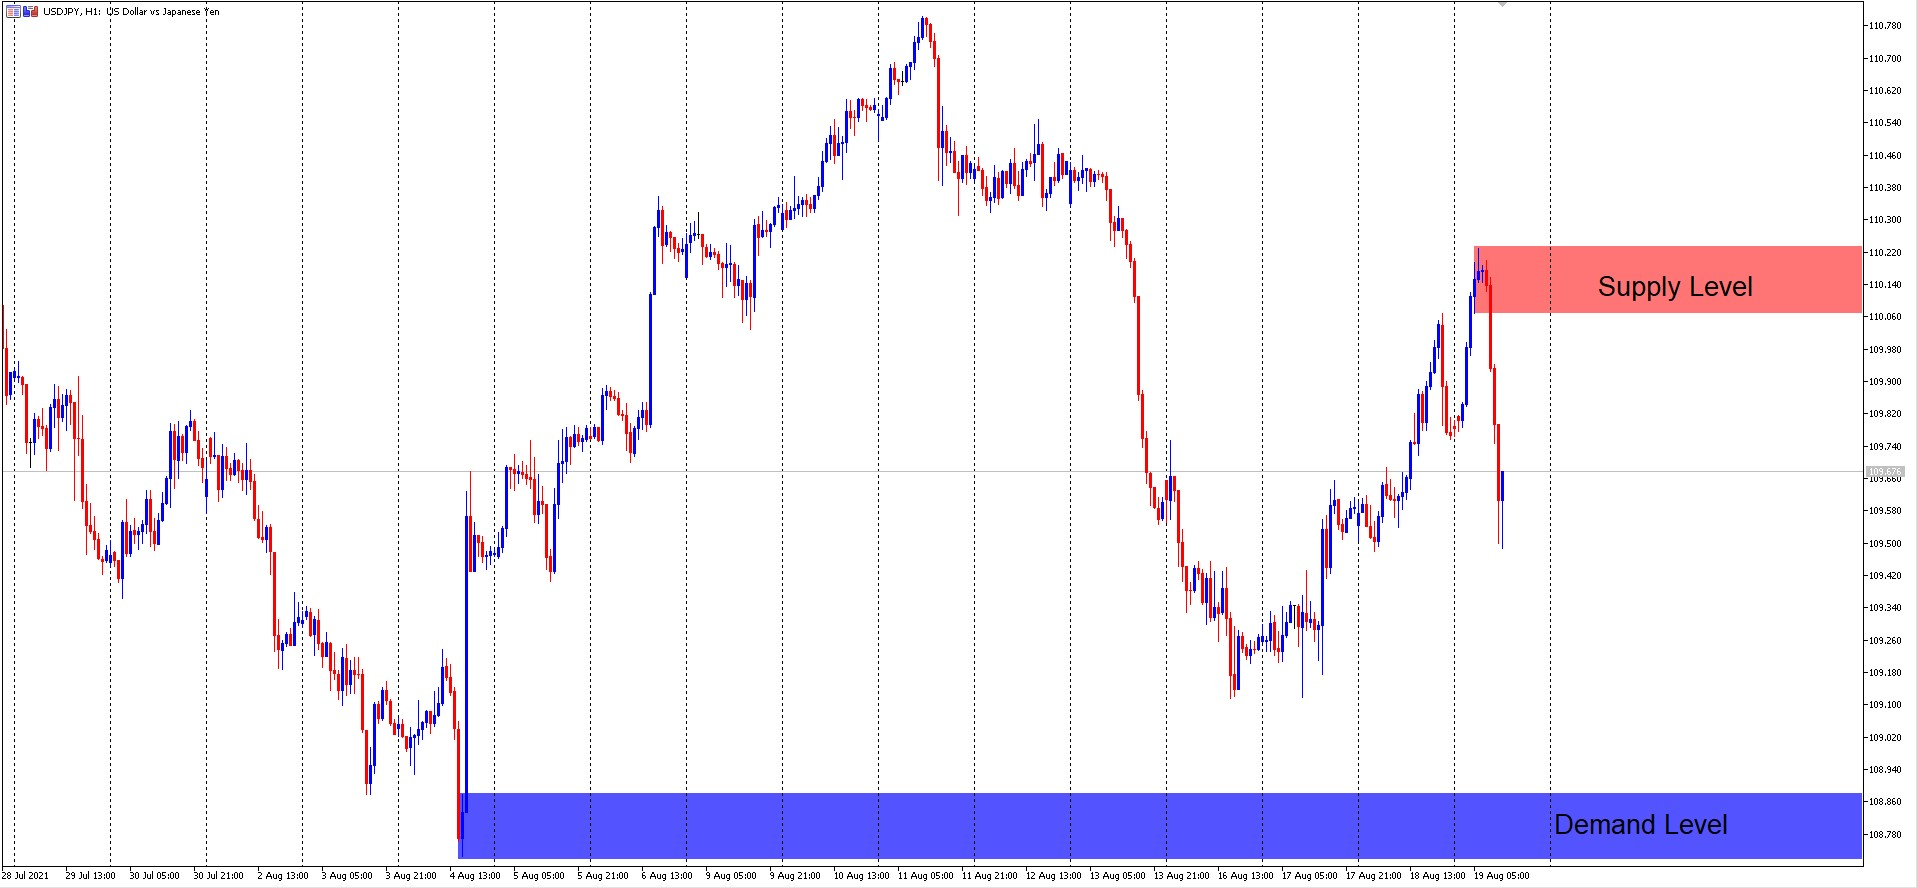 USD/JPY H1 Supply and Demand